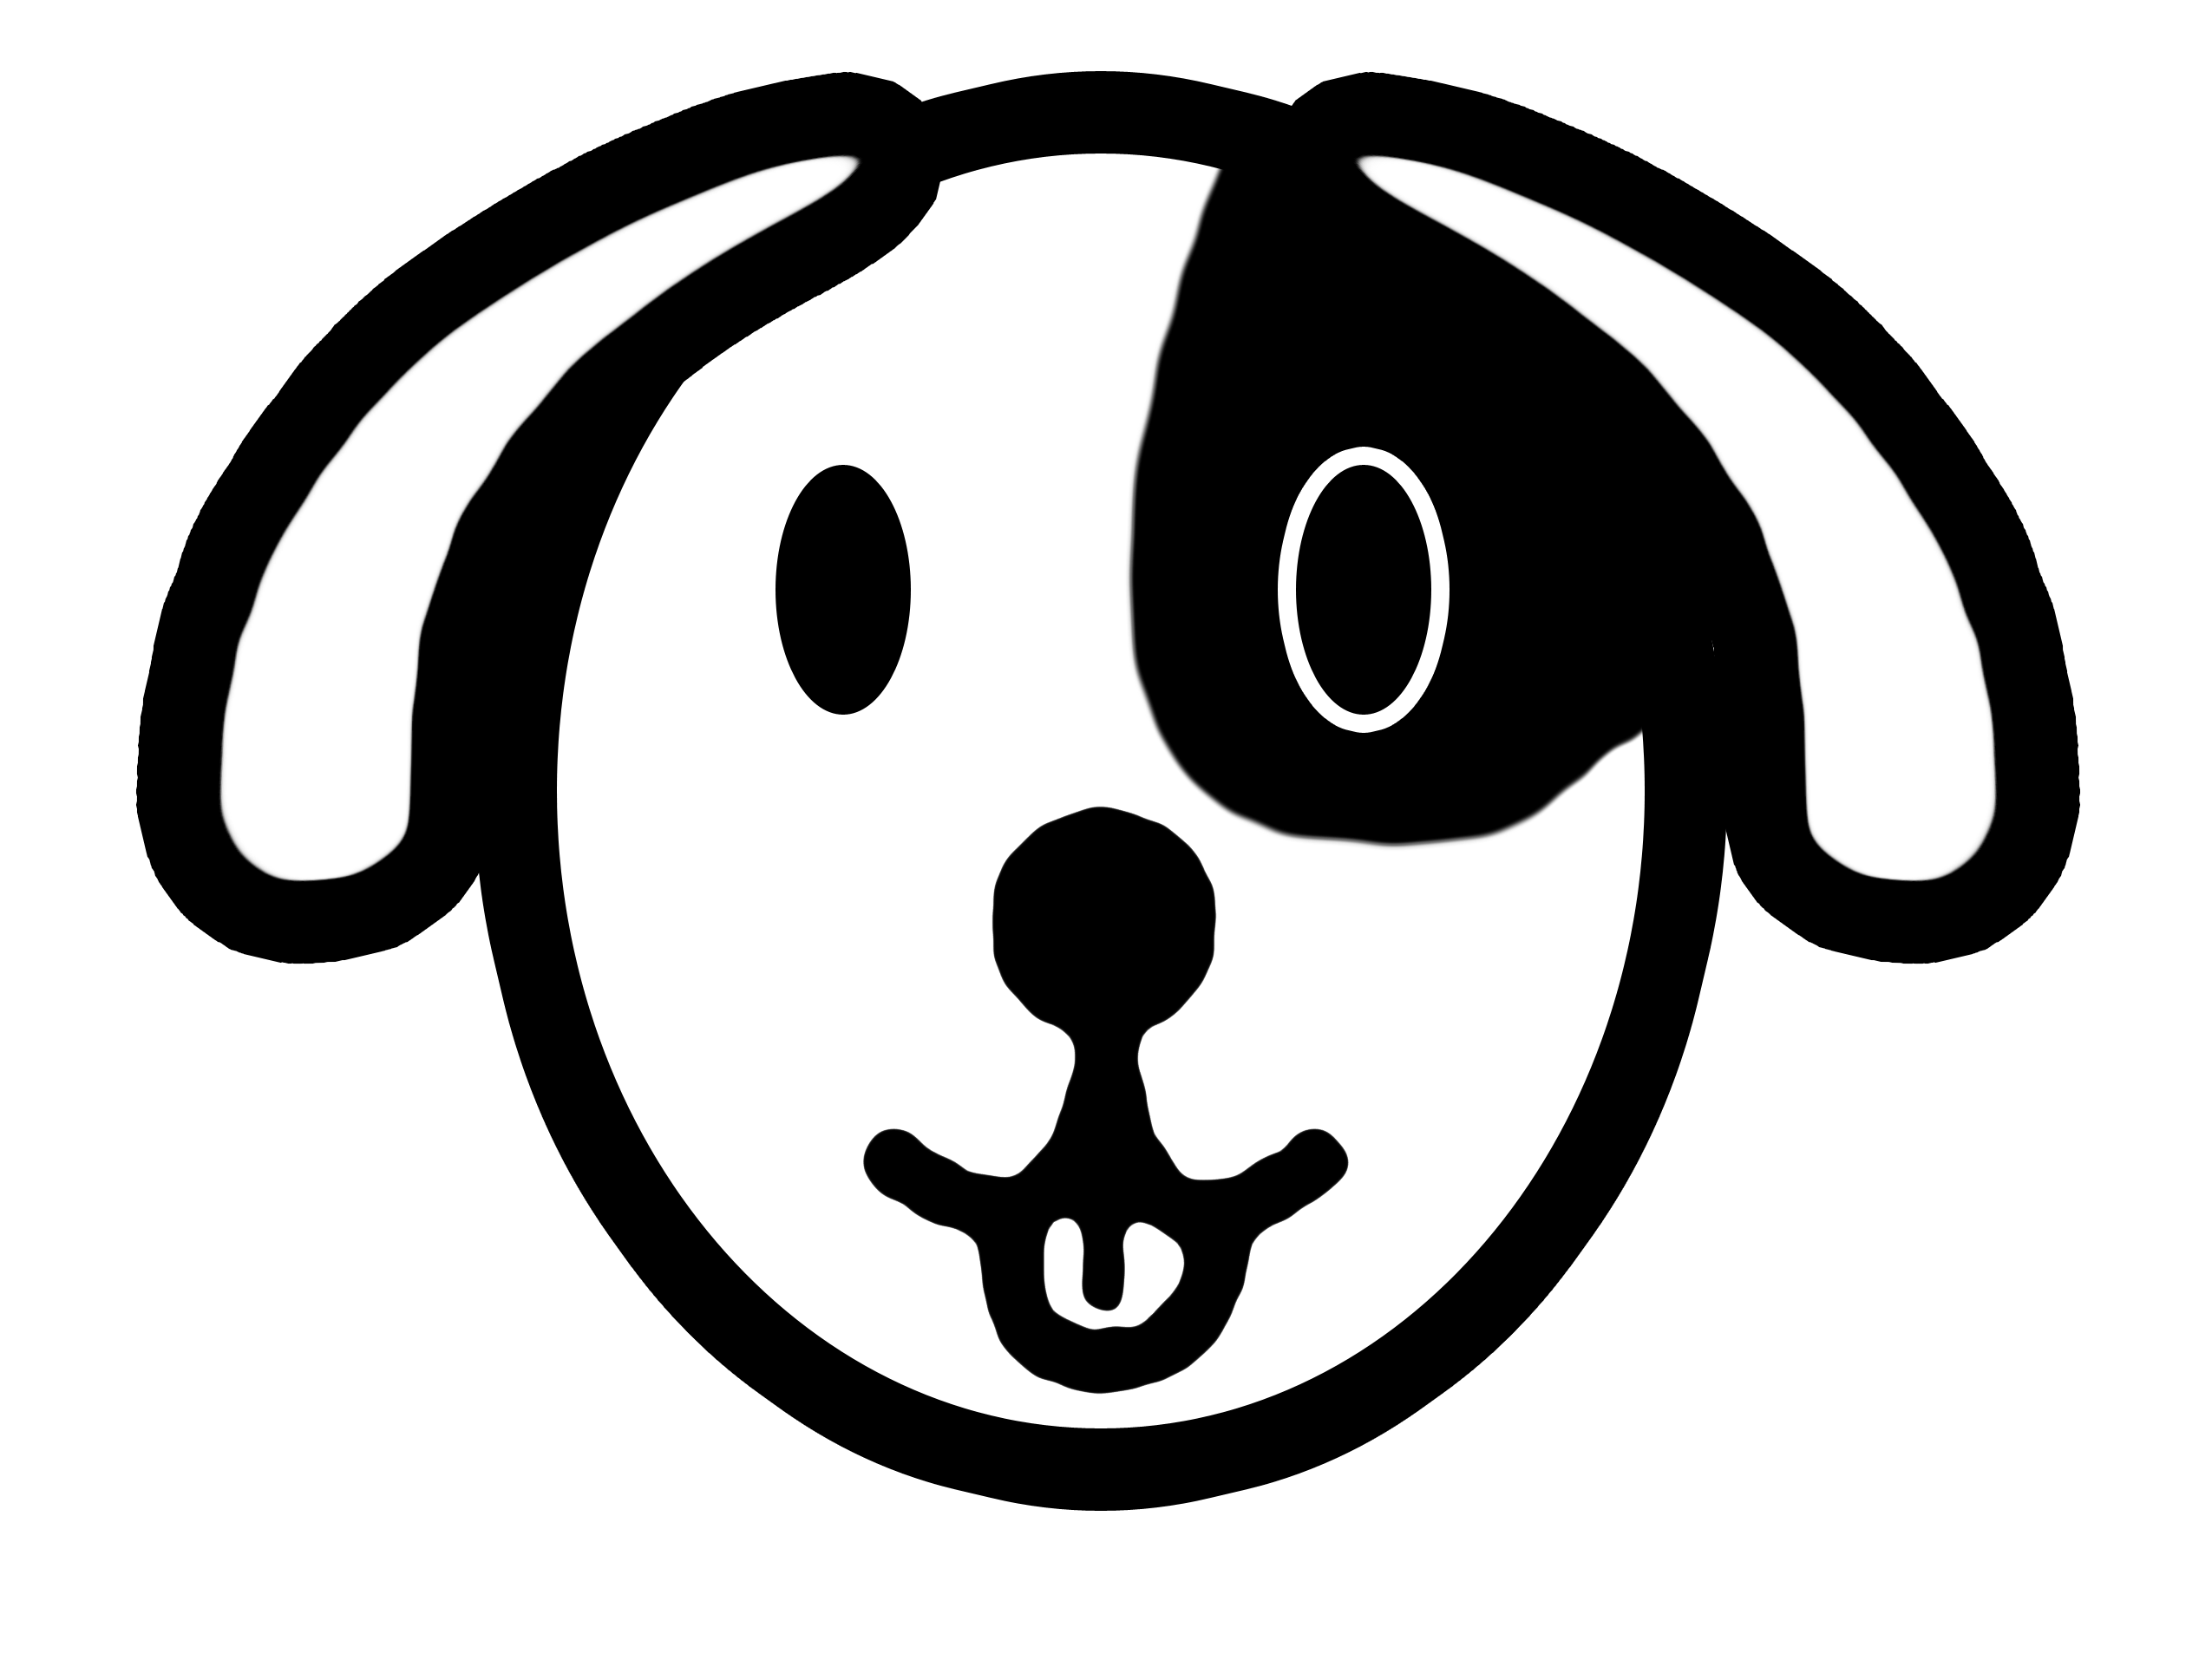 Puppy Dog Face Meaning